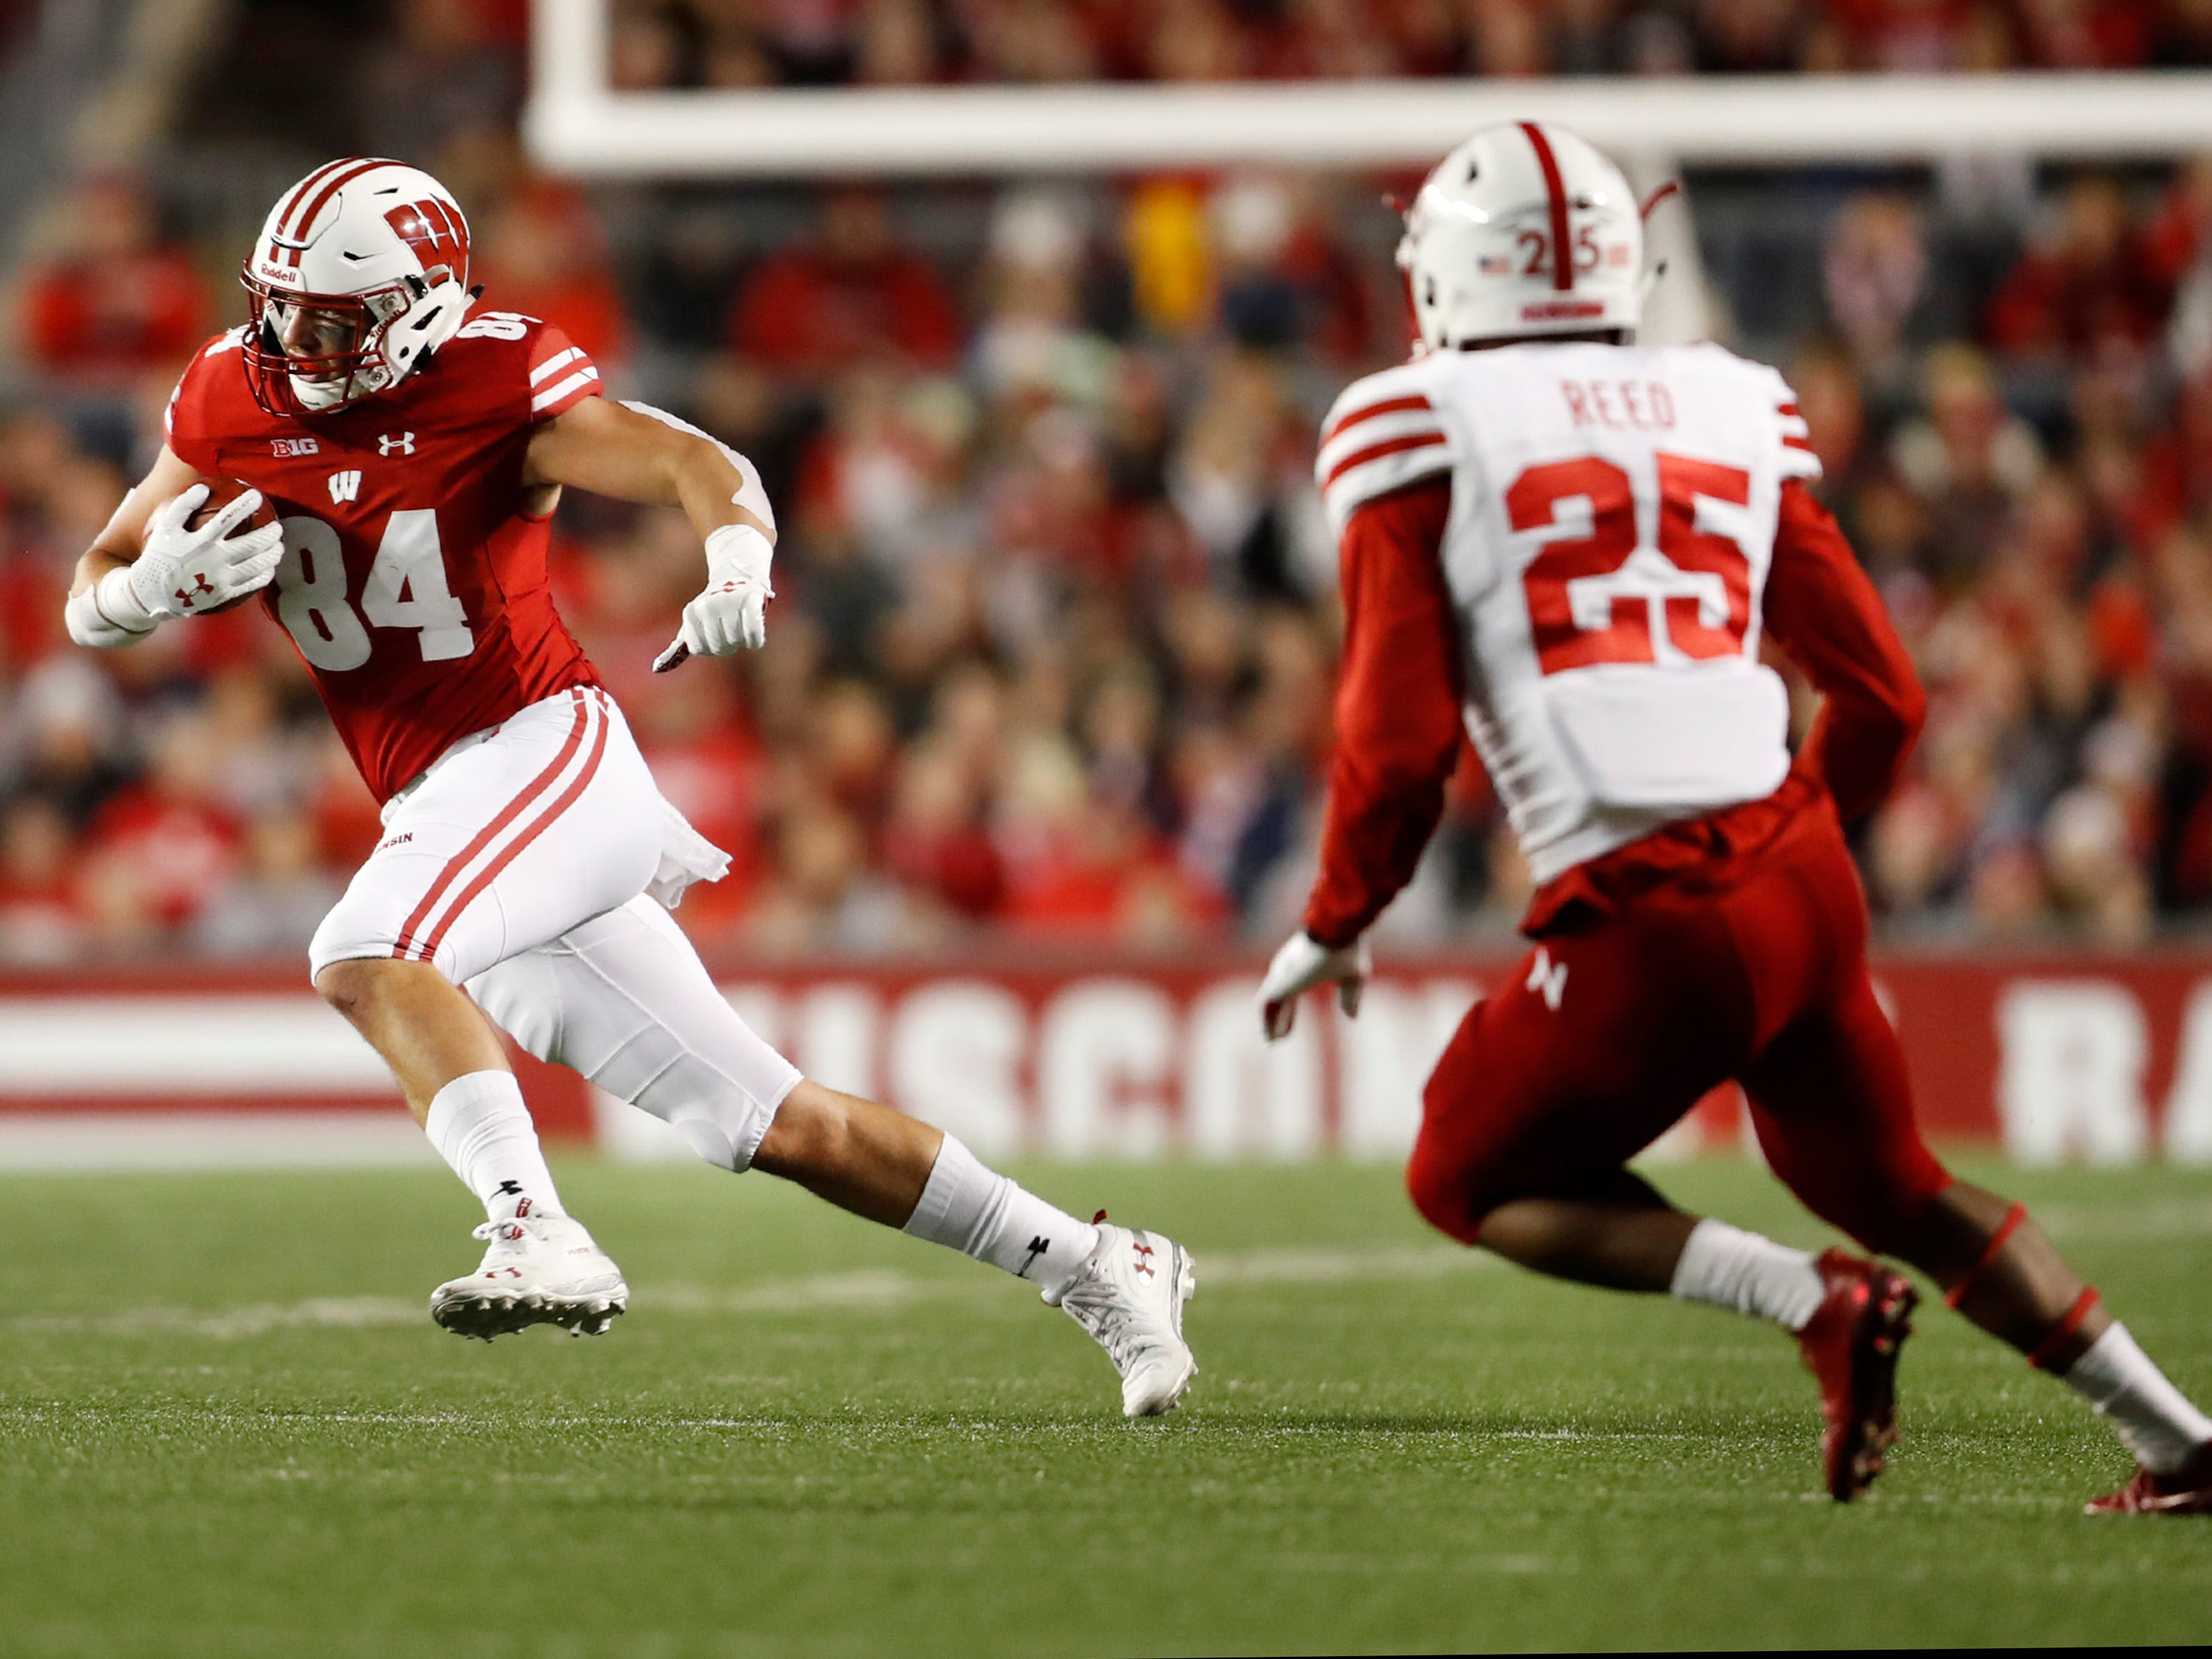 Wisconsin tight end Jake Ferguson finds a seam in Nebraska's defense to pick up a few extra yards after a reception on Saturday night.